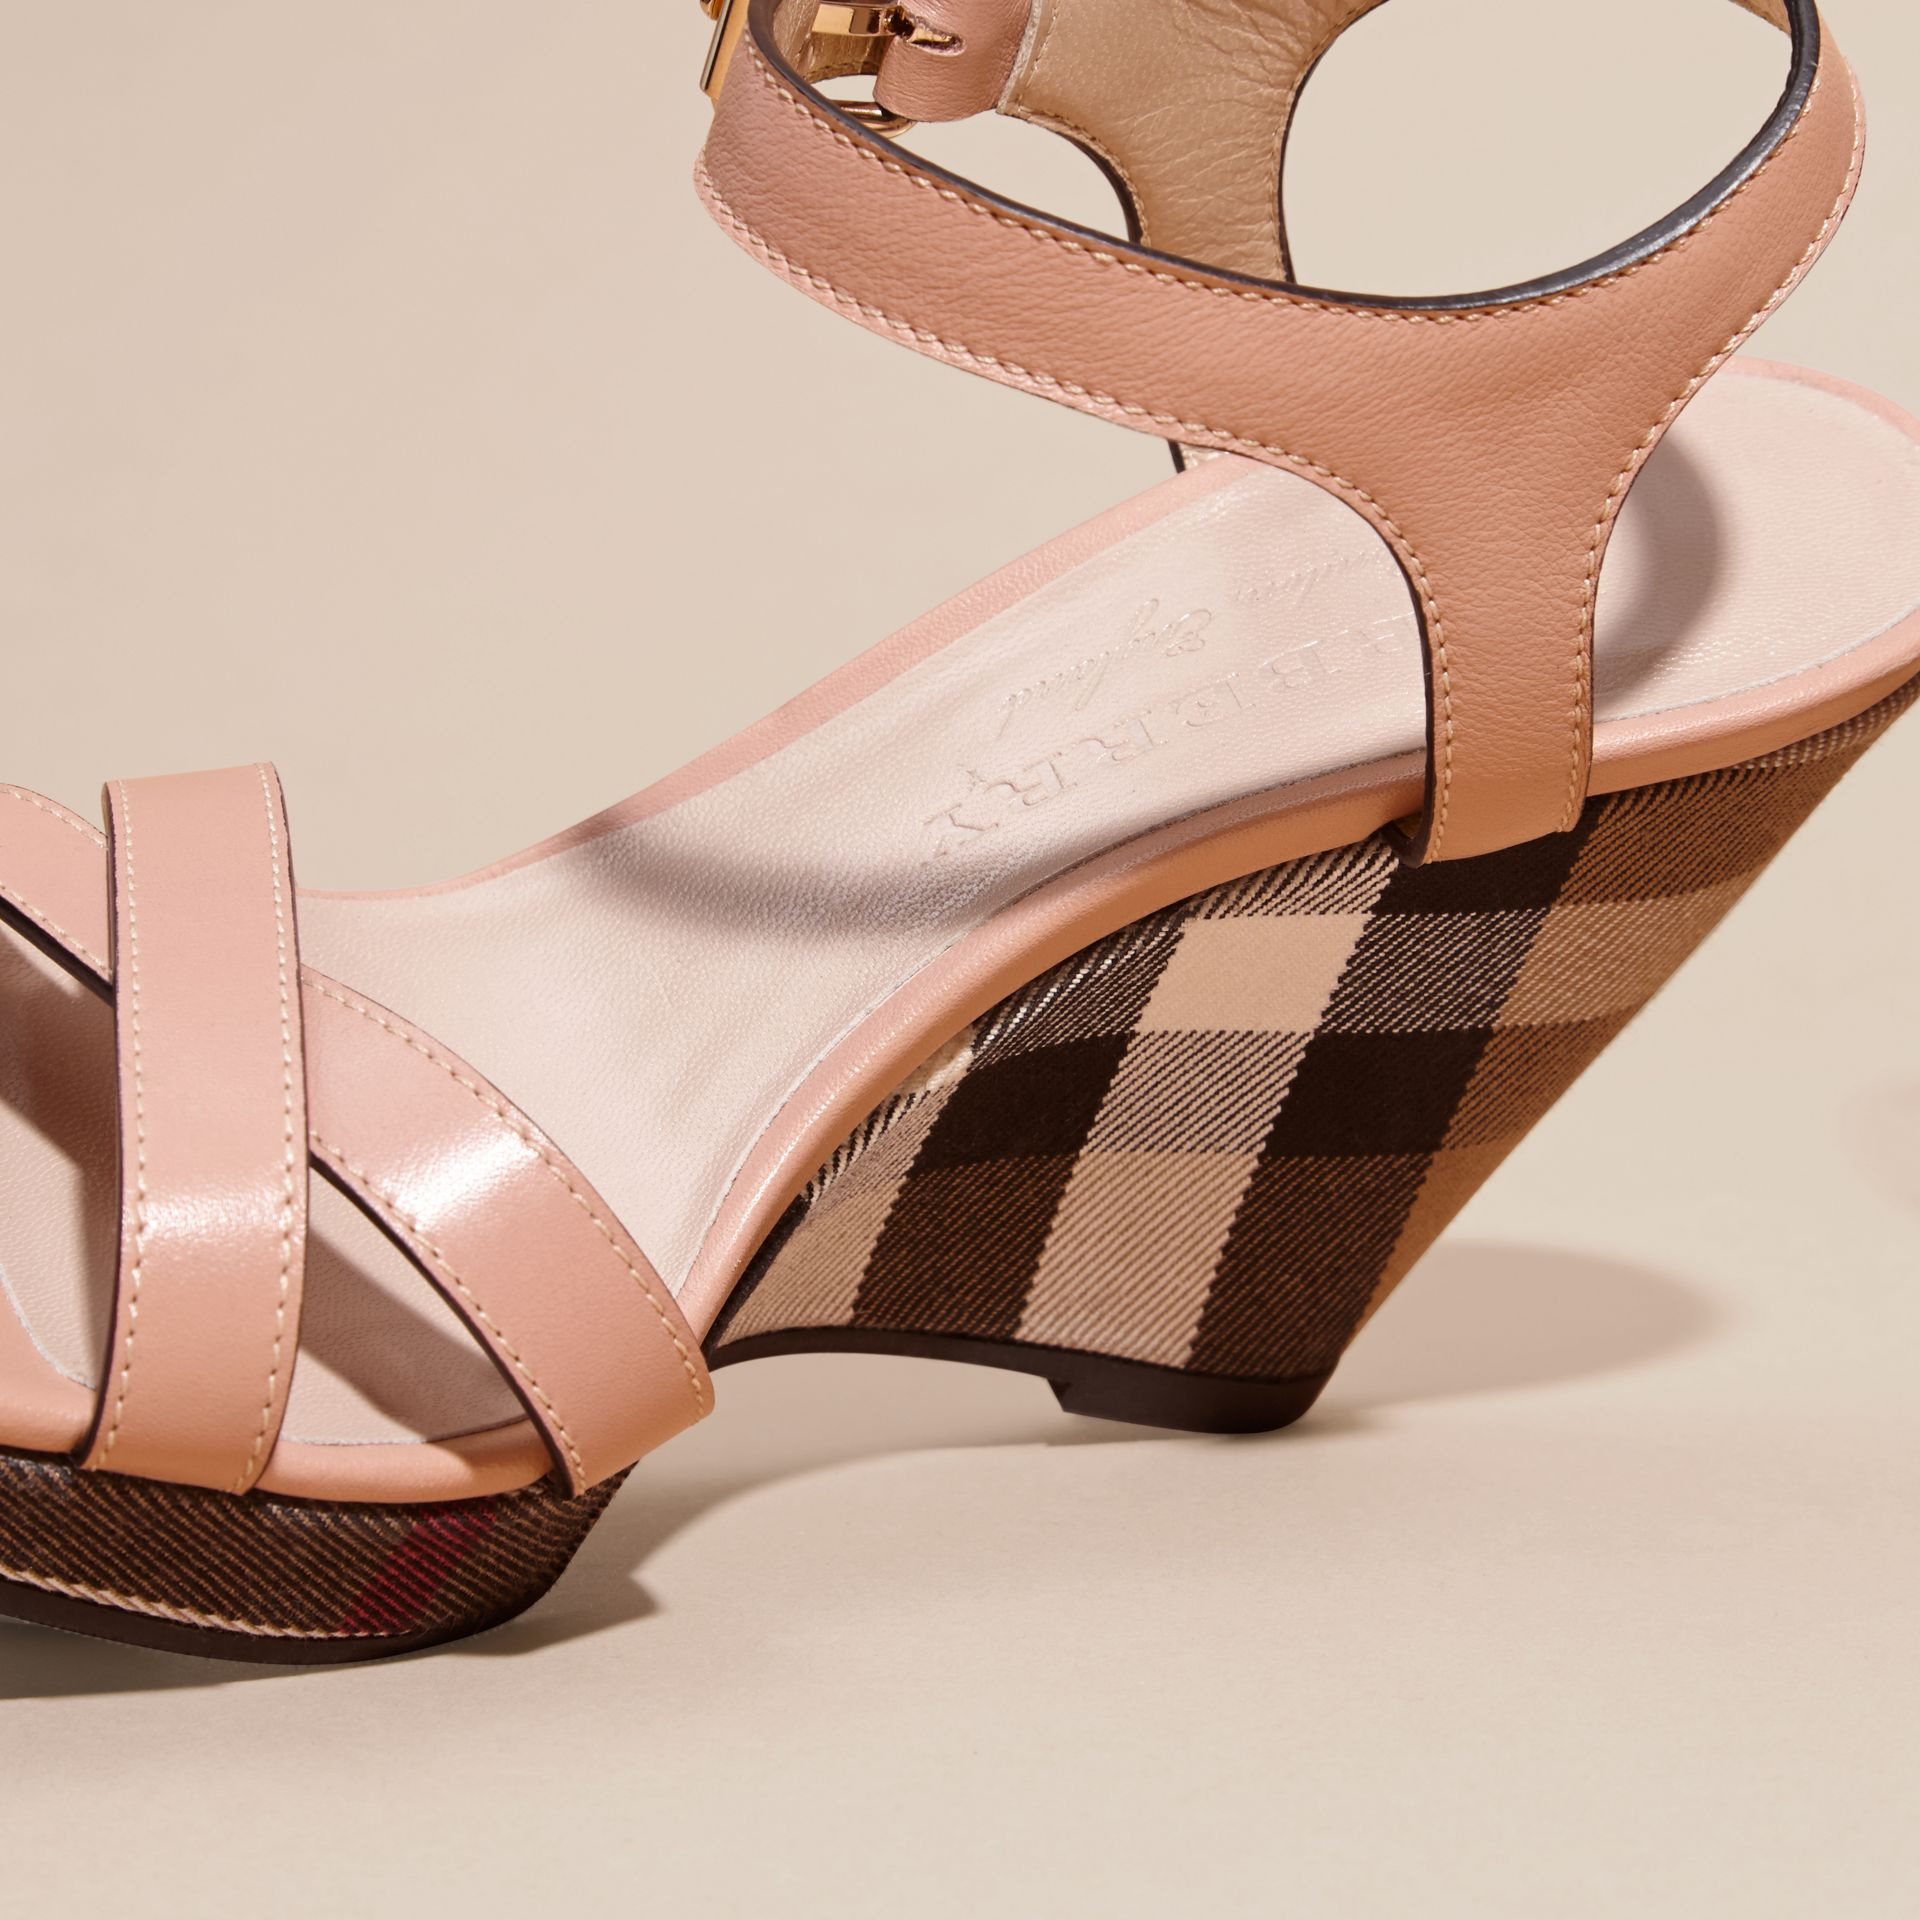 House Check Detail Leather Wedge Sandals in Nude Blush - Women | Burberry Singapore - gallery image 5